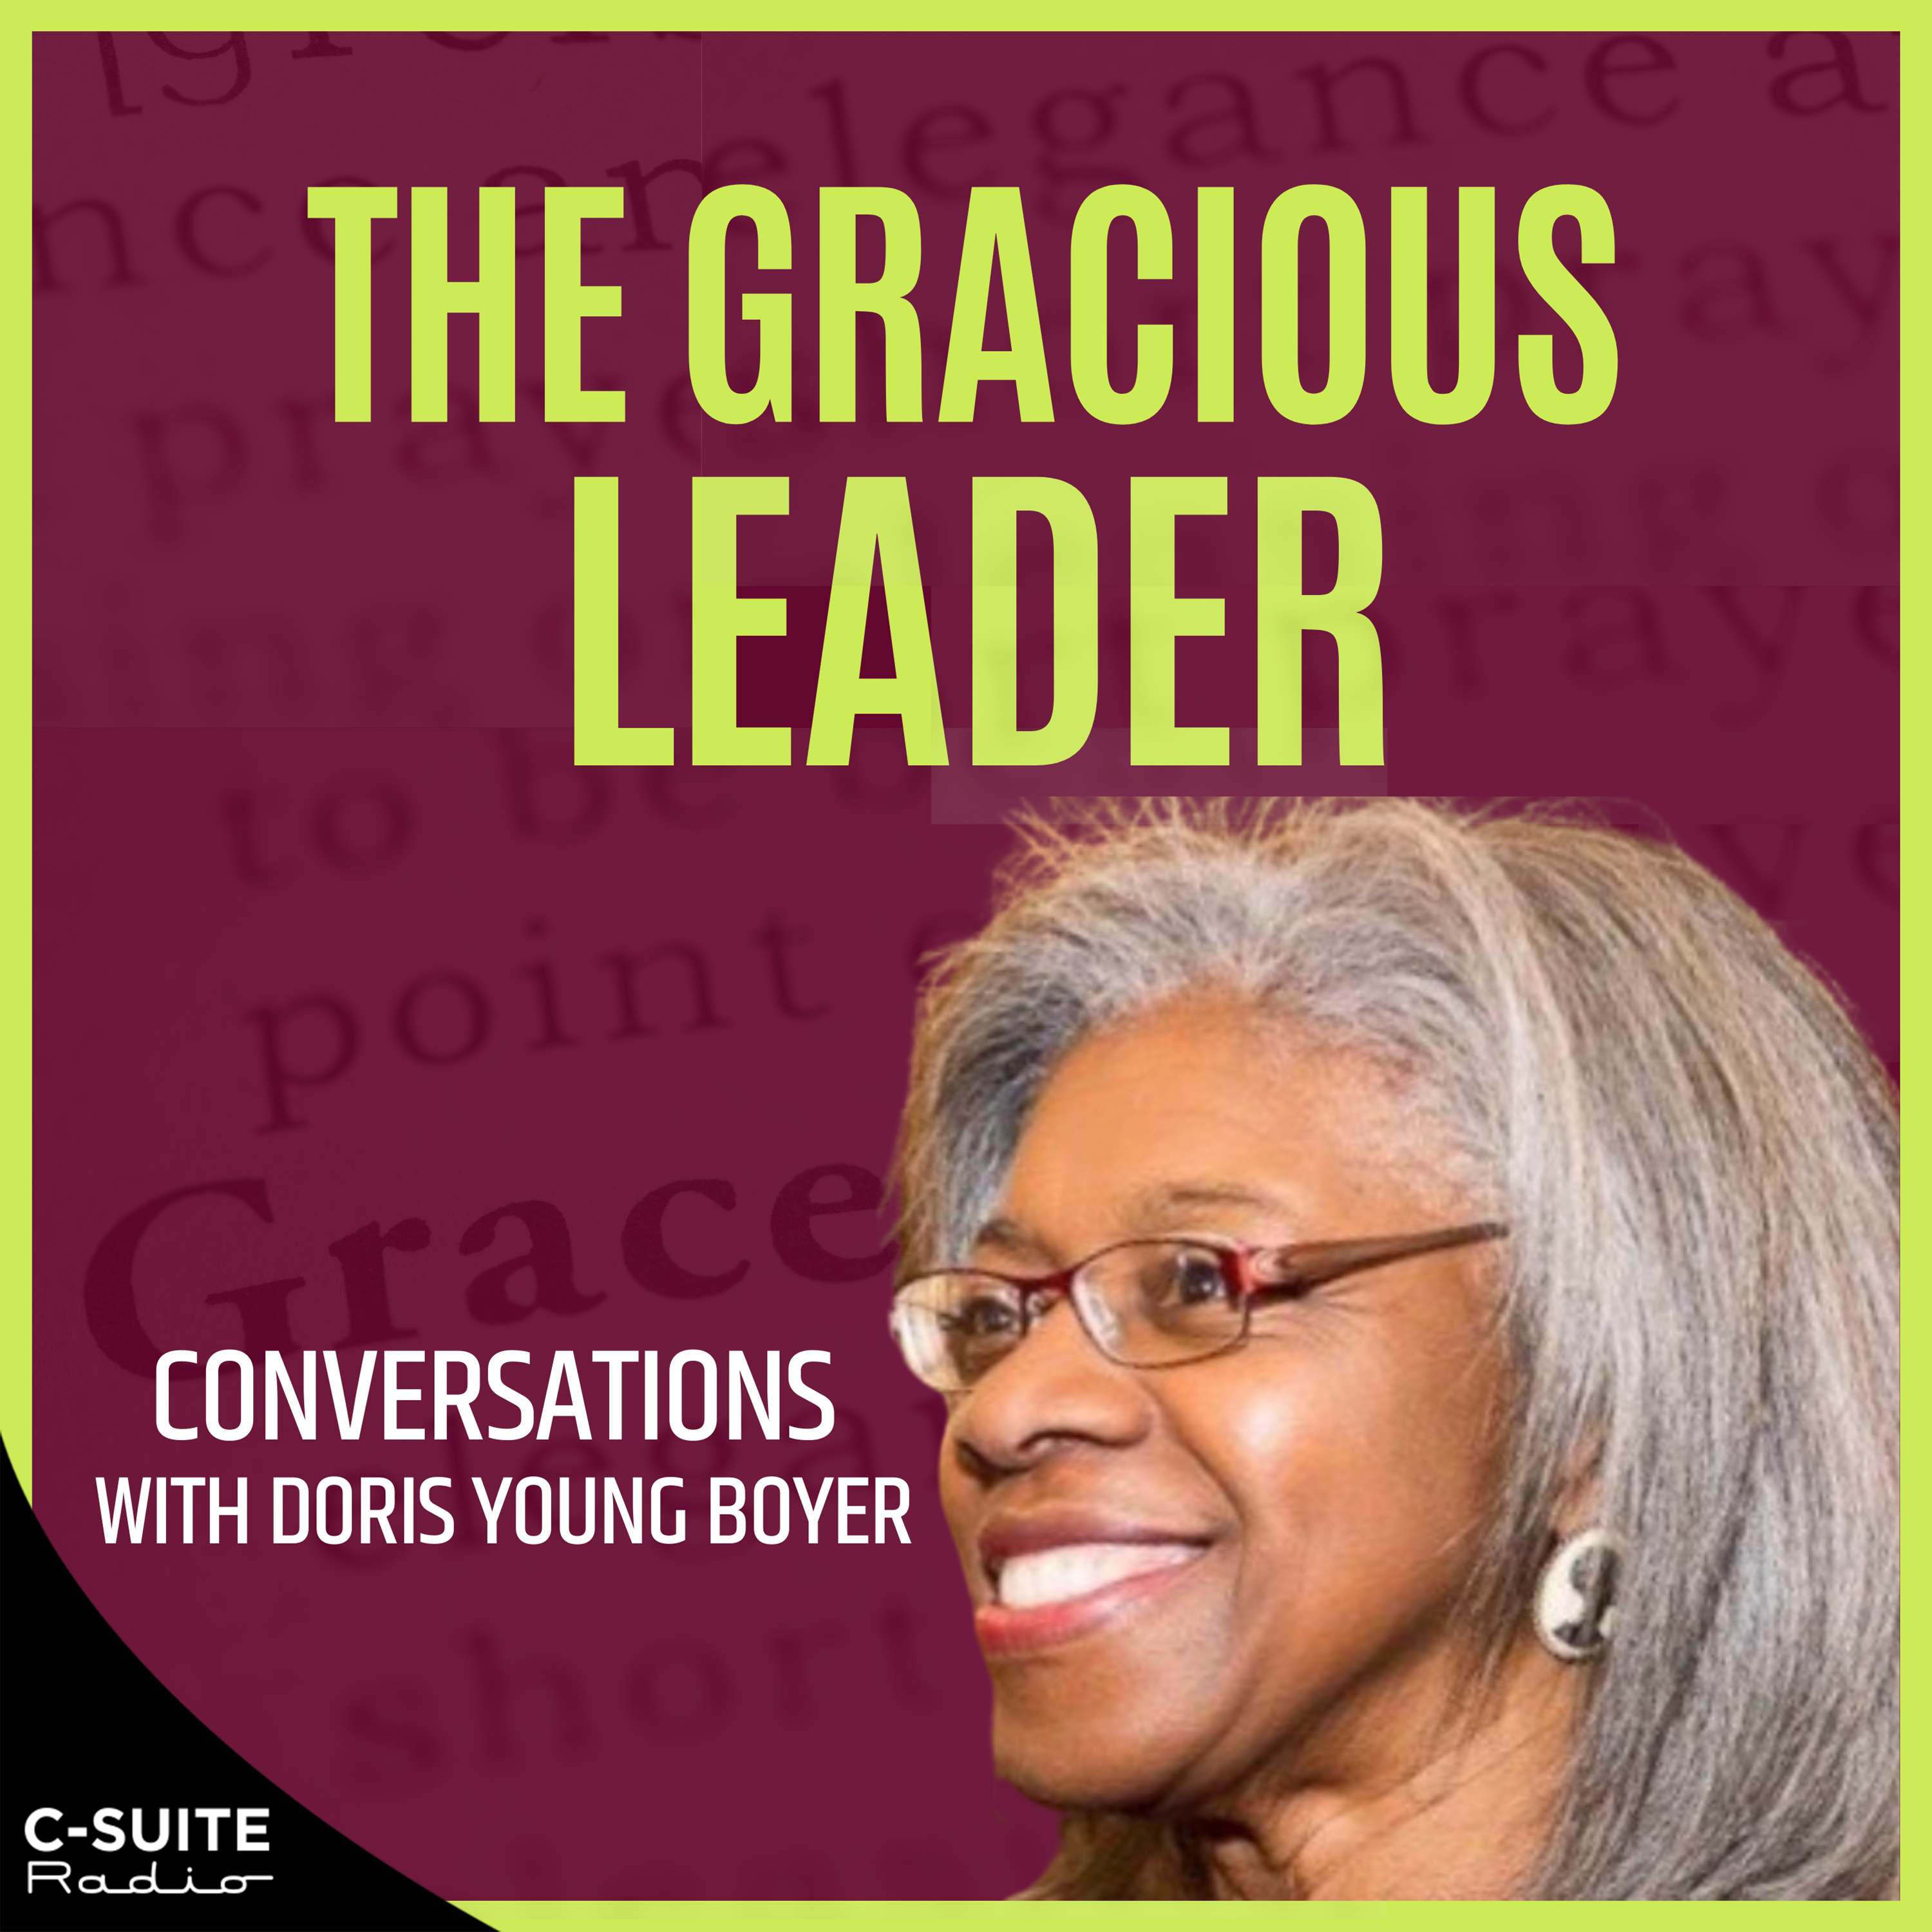 The Gracious Leader: Conversations with Doris Young Boyer